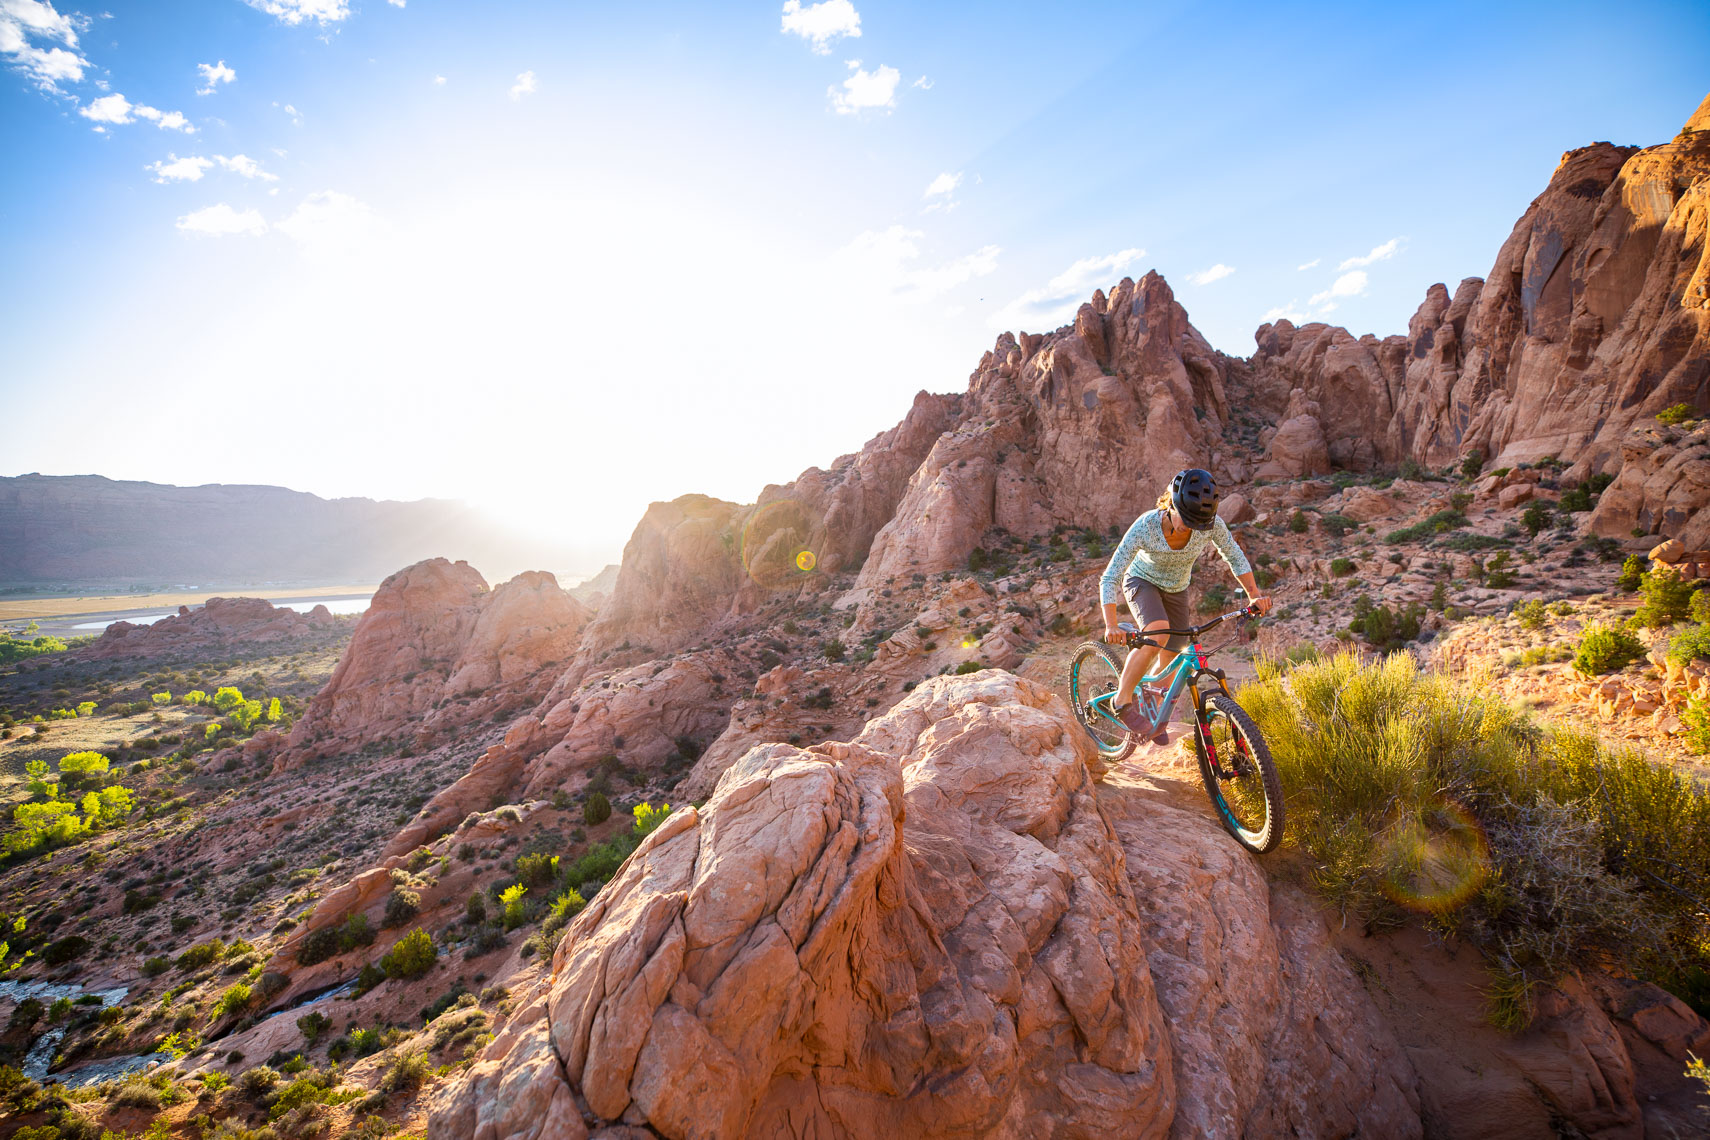 Healthcare and fitness photographer Robert Houser photographs mountain biking on location in Moab, Utah